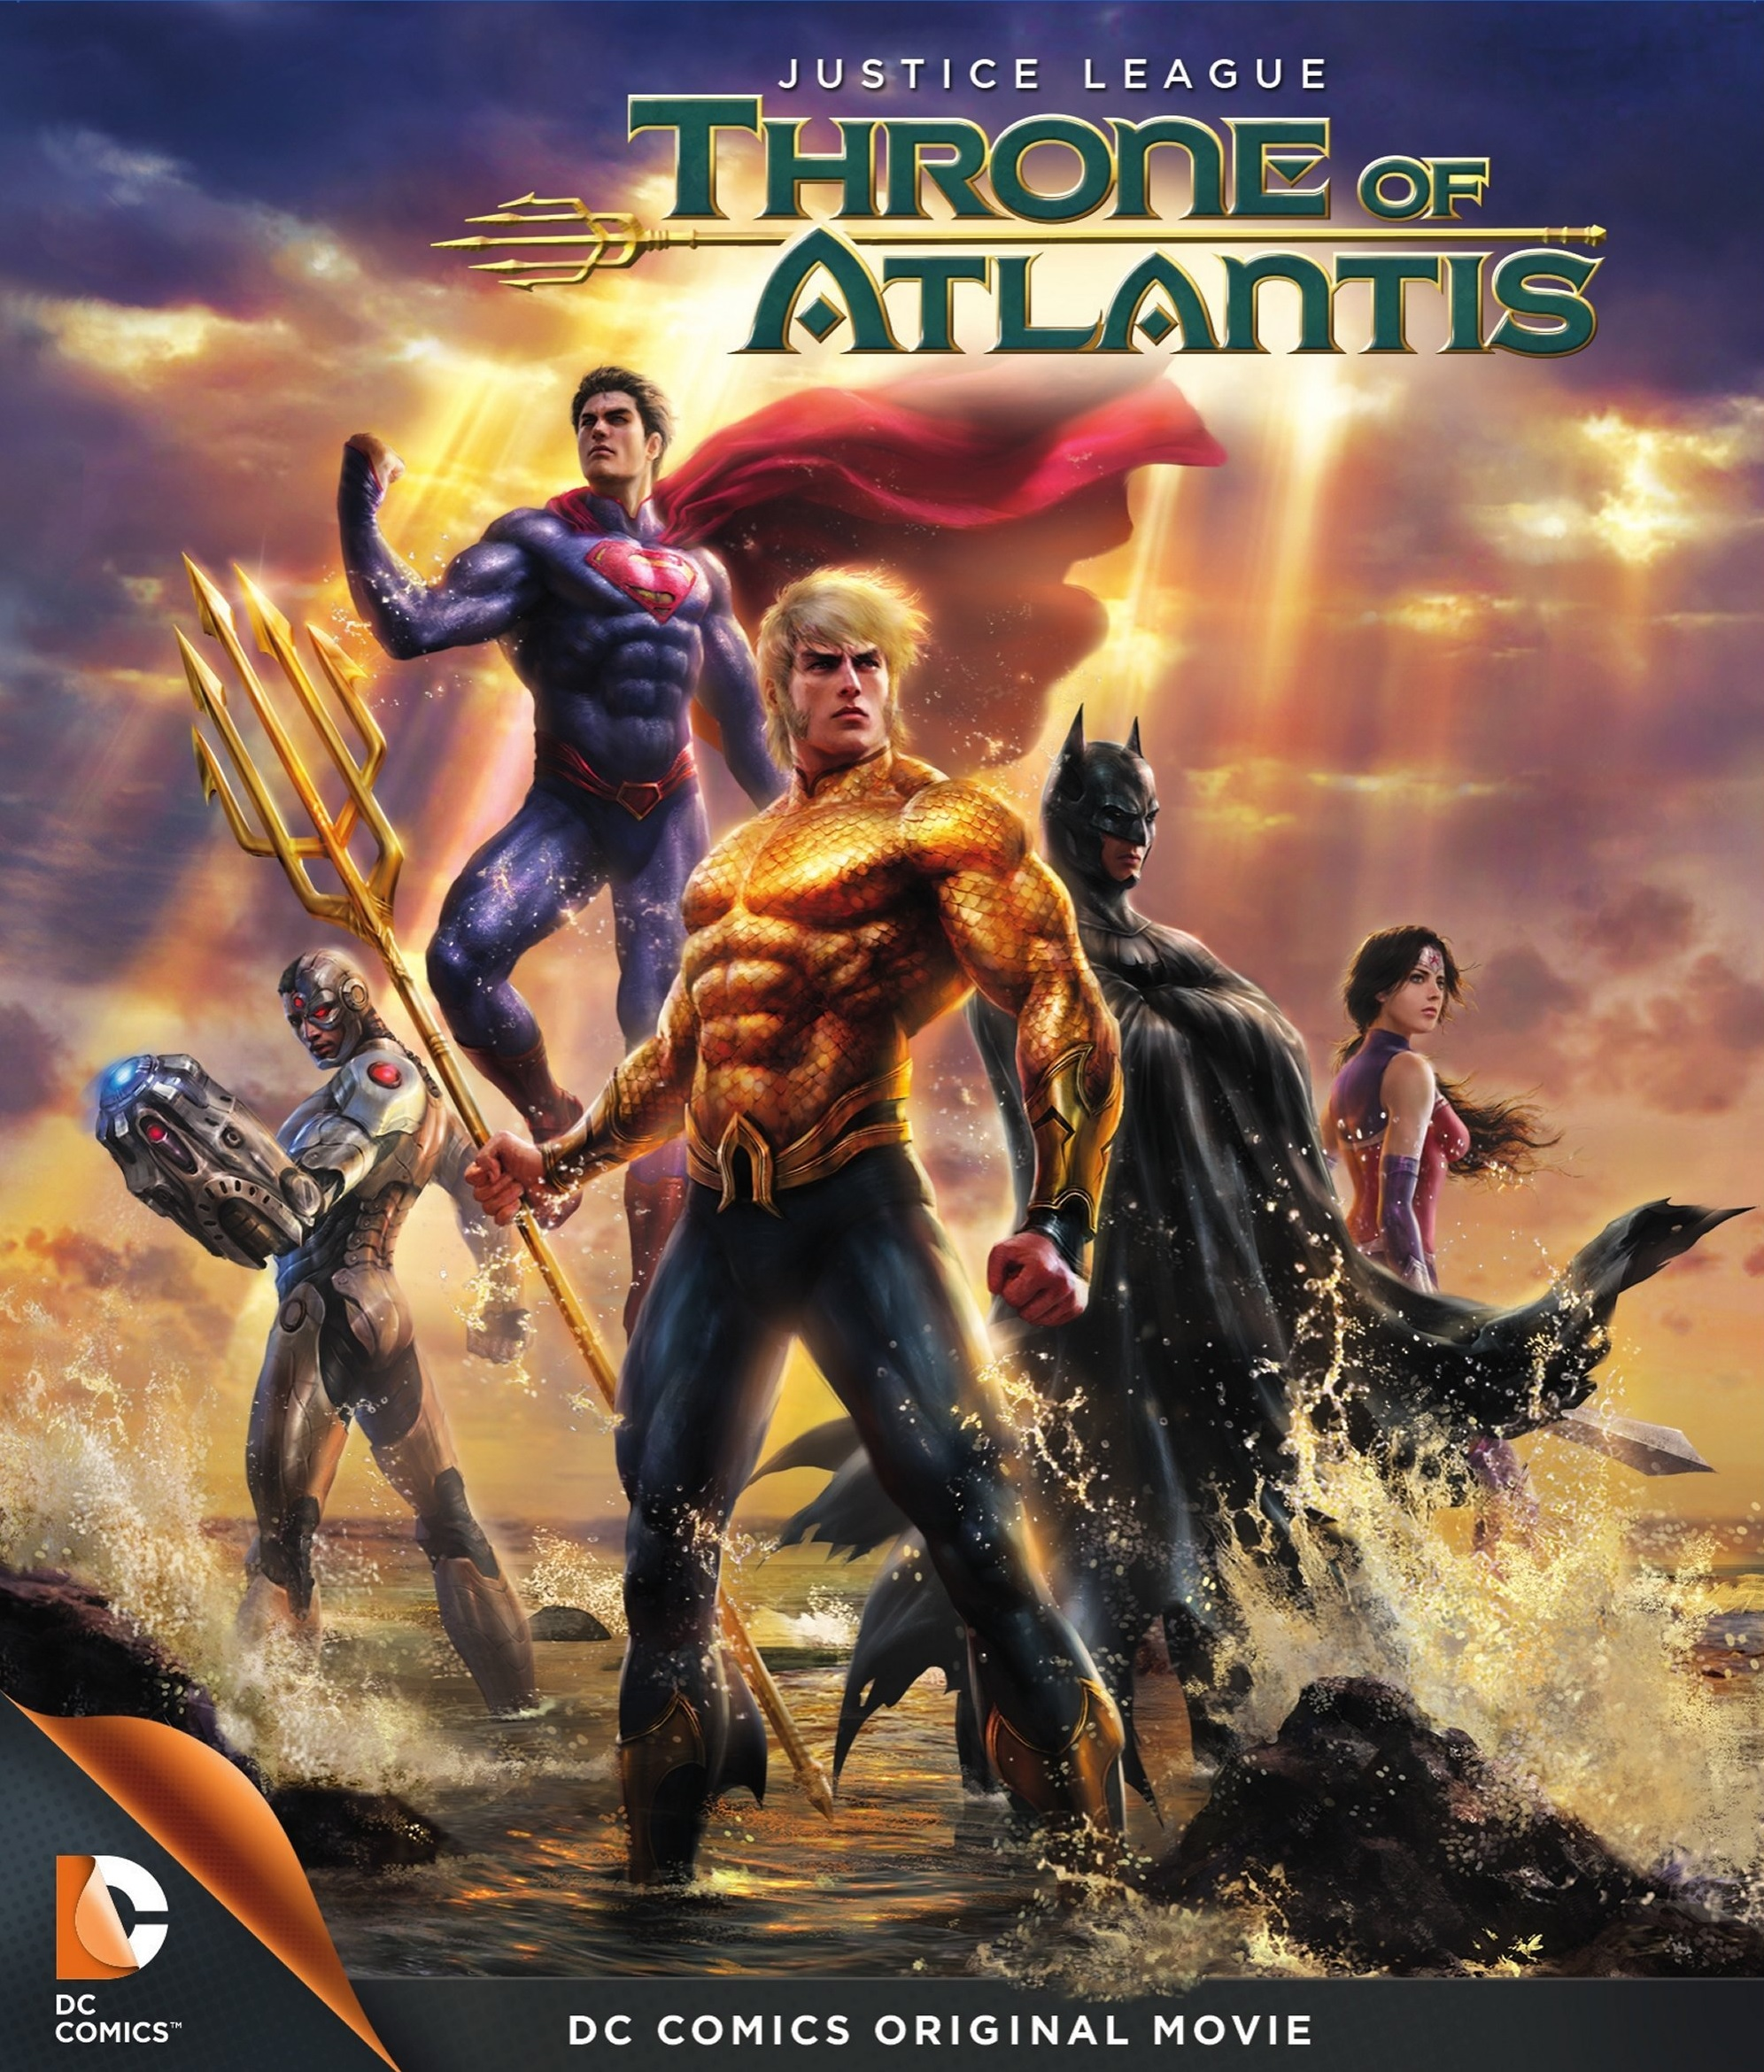 jla adventures trapped in time full movie in hindi